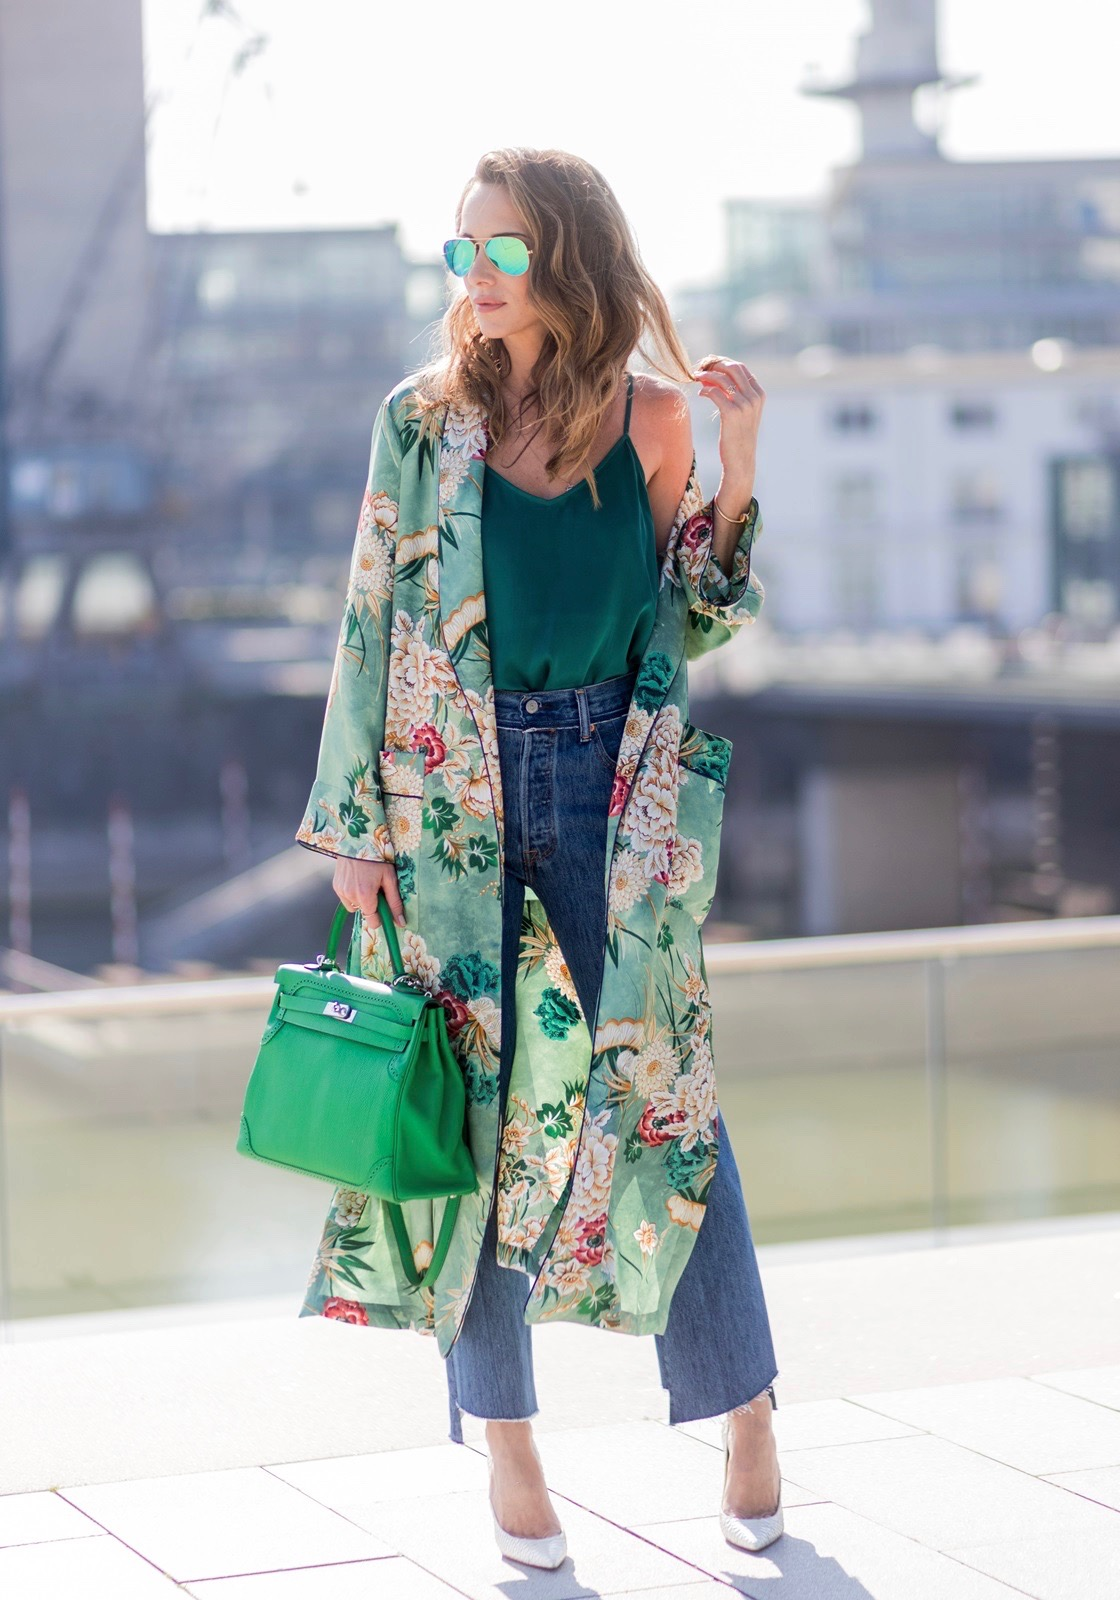 floral trend, floral prints, floral design, floral fashion, high fashion with florals, high fashion floral prints, floral street style